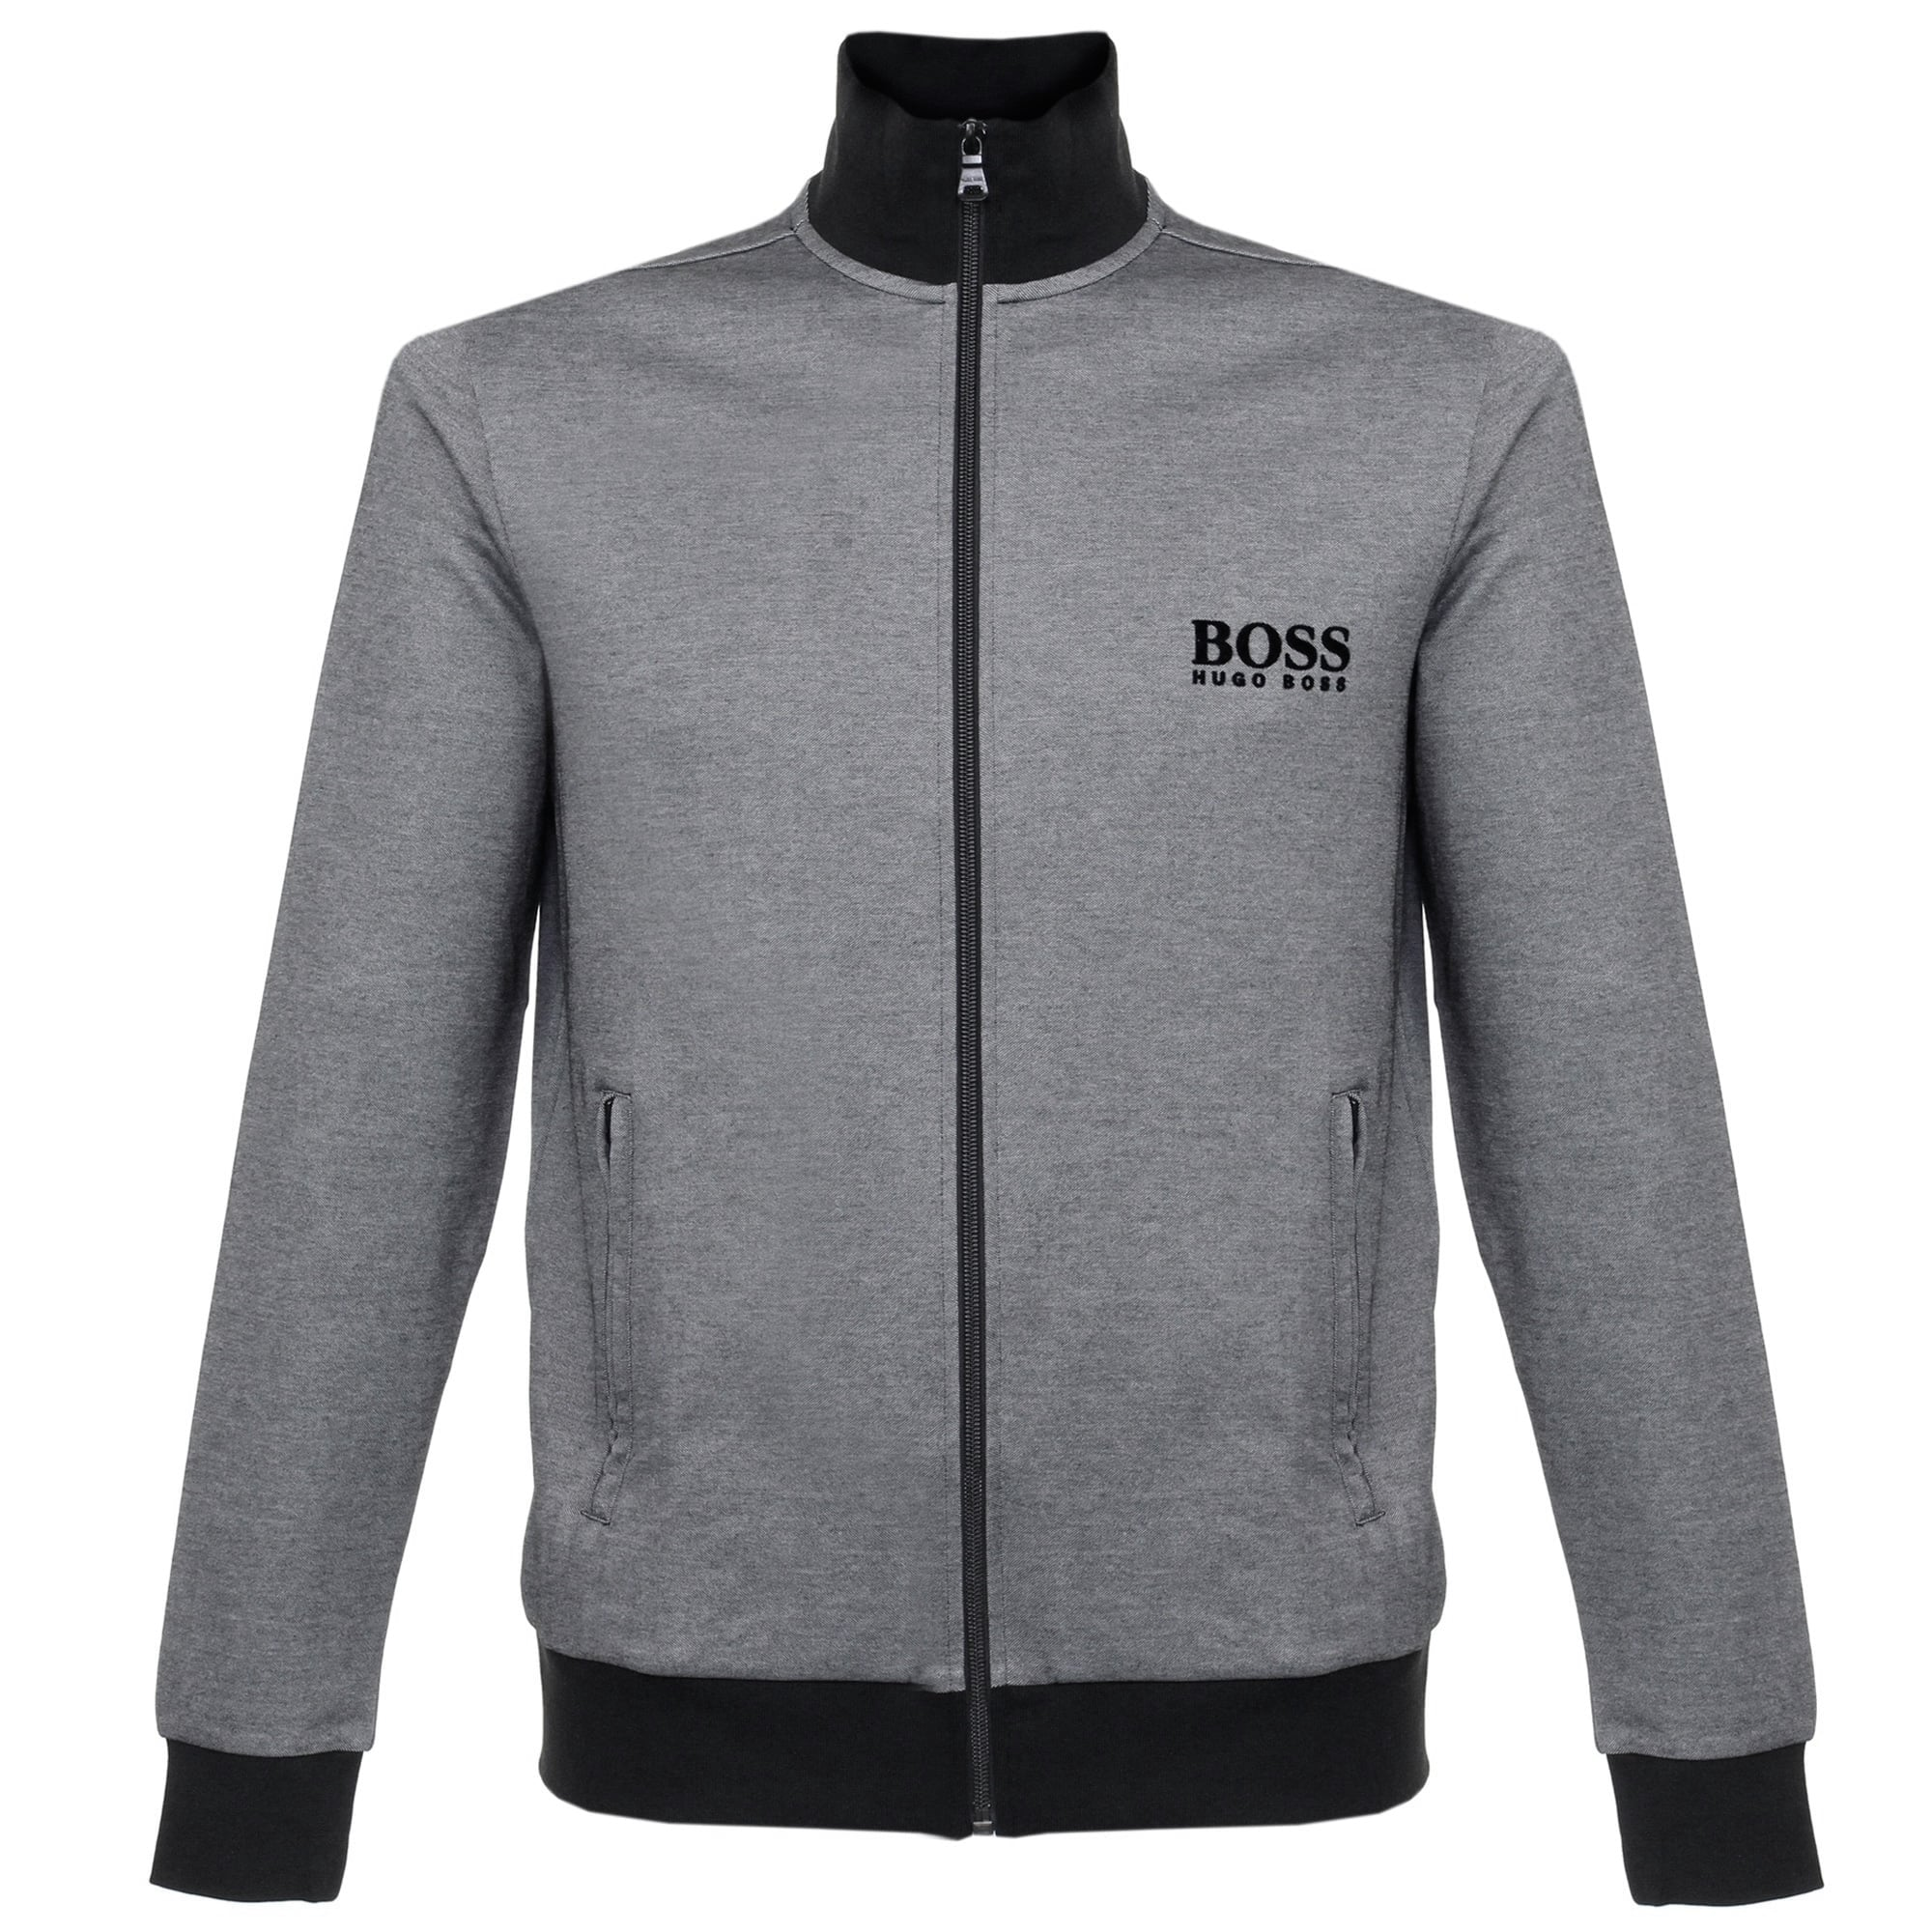 89671e6b Hugo Boss Clothing UK | Jacket Zip Black Track Top